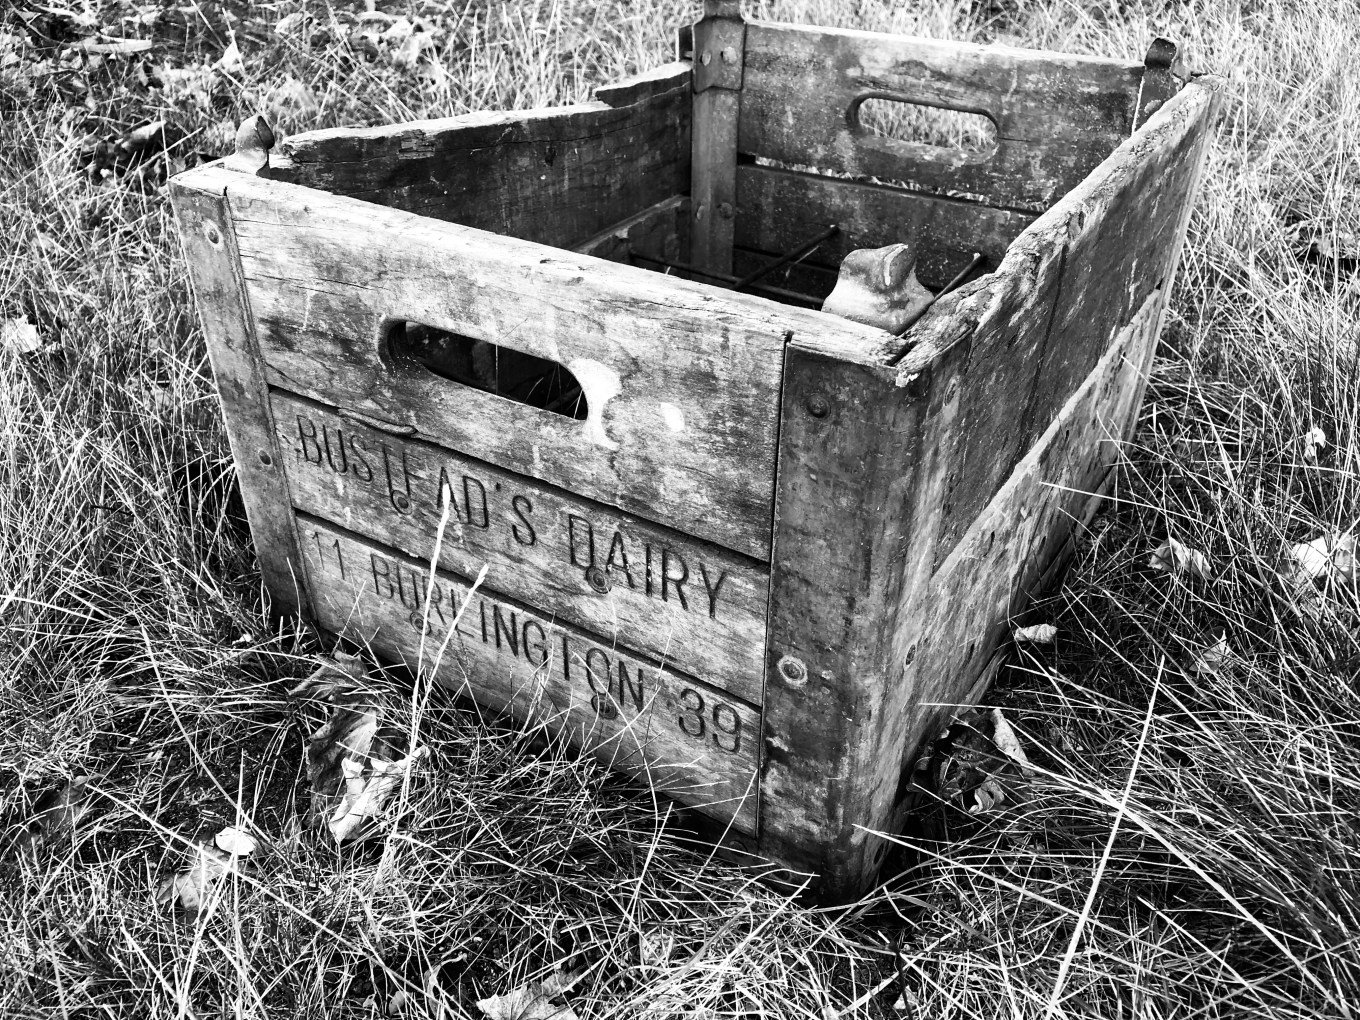 Bustead's milk crate